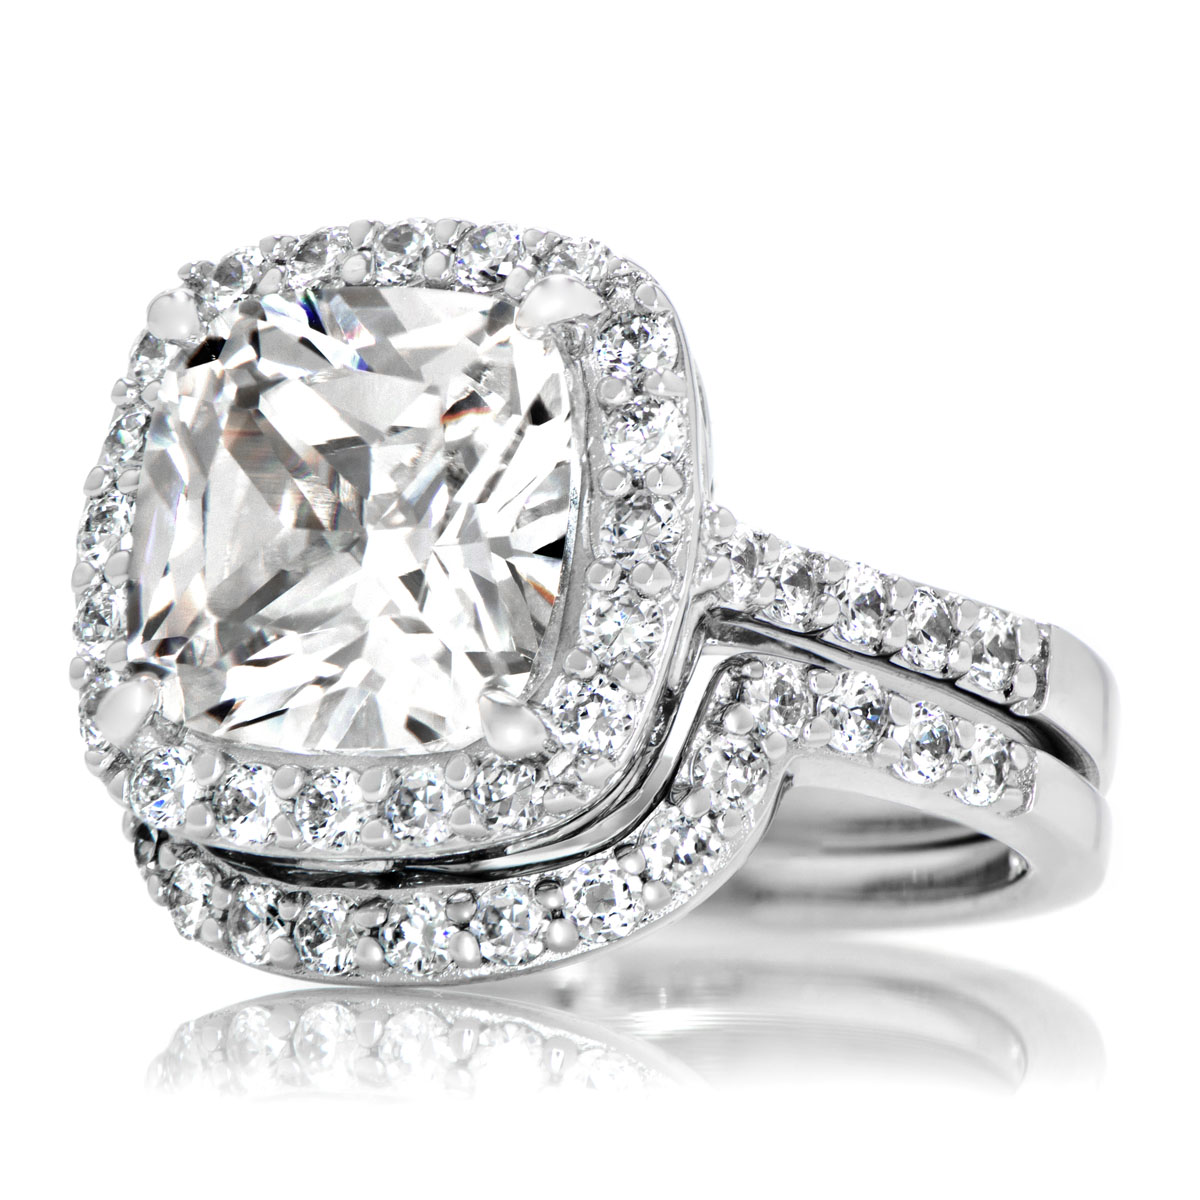 cushion cut cz halo wedding ring set - 10mm